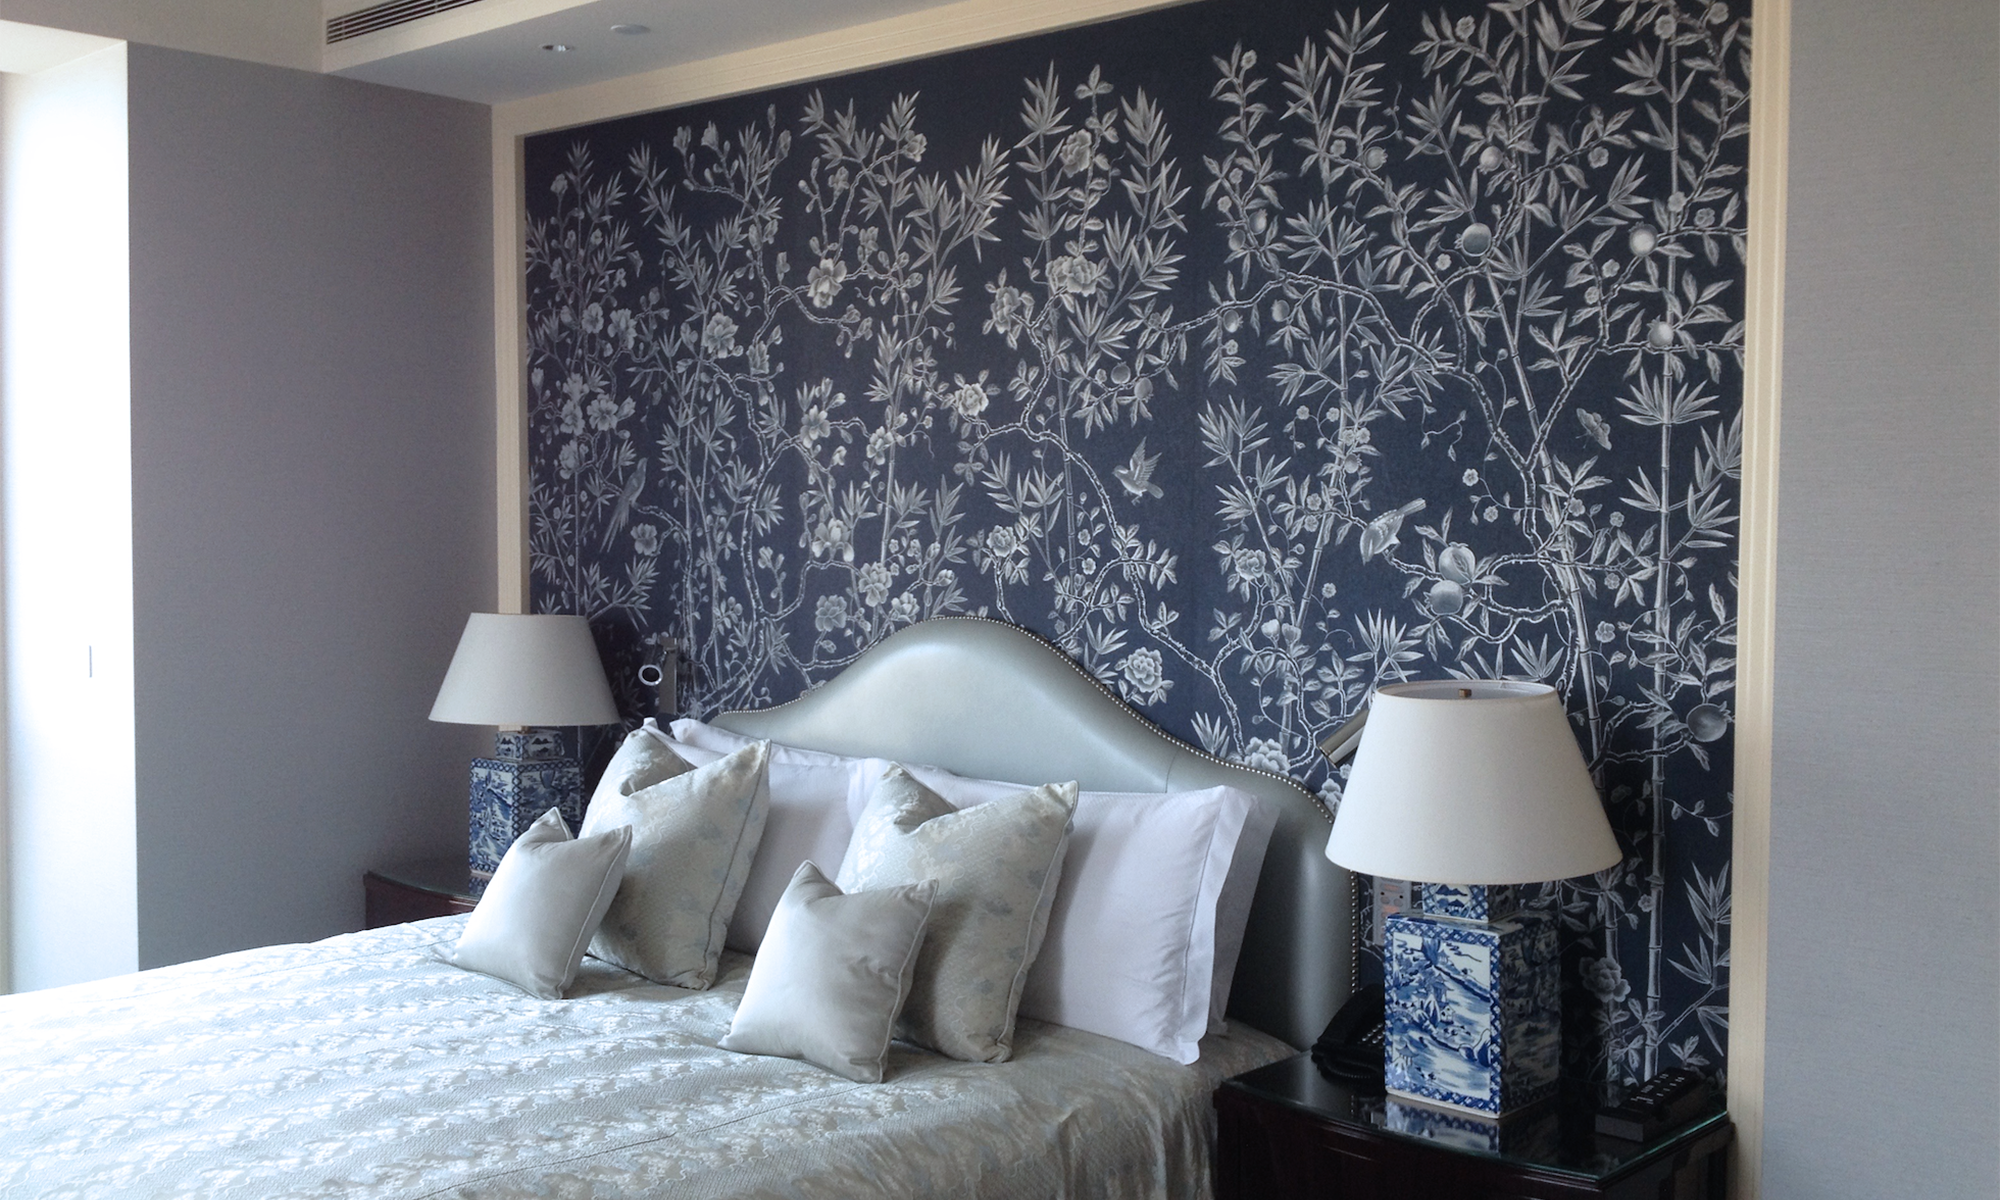 Hand painted wall coverings, suites